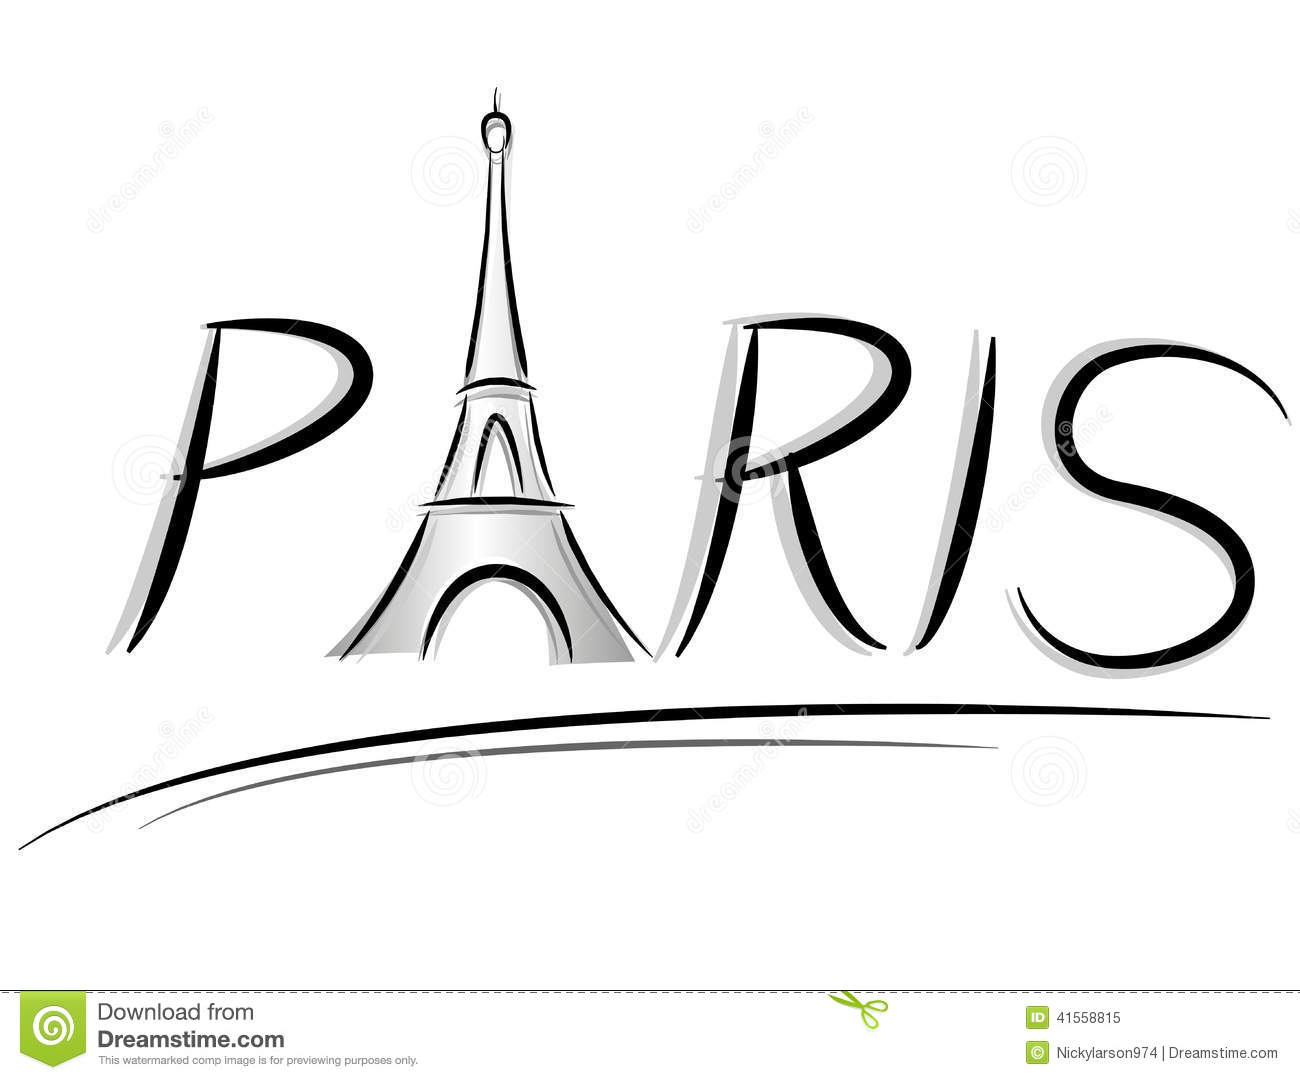 Lindajkang wordpress likewise Dibujos further Hotel Buildings Vector Set 725252 as well Stock Image Eiffel Tower Paris Monument Tour Tourism Image30811891 in addition . on eiffel tower silhouette